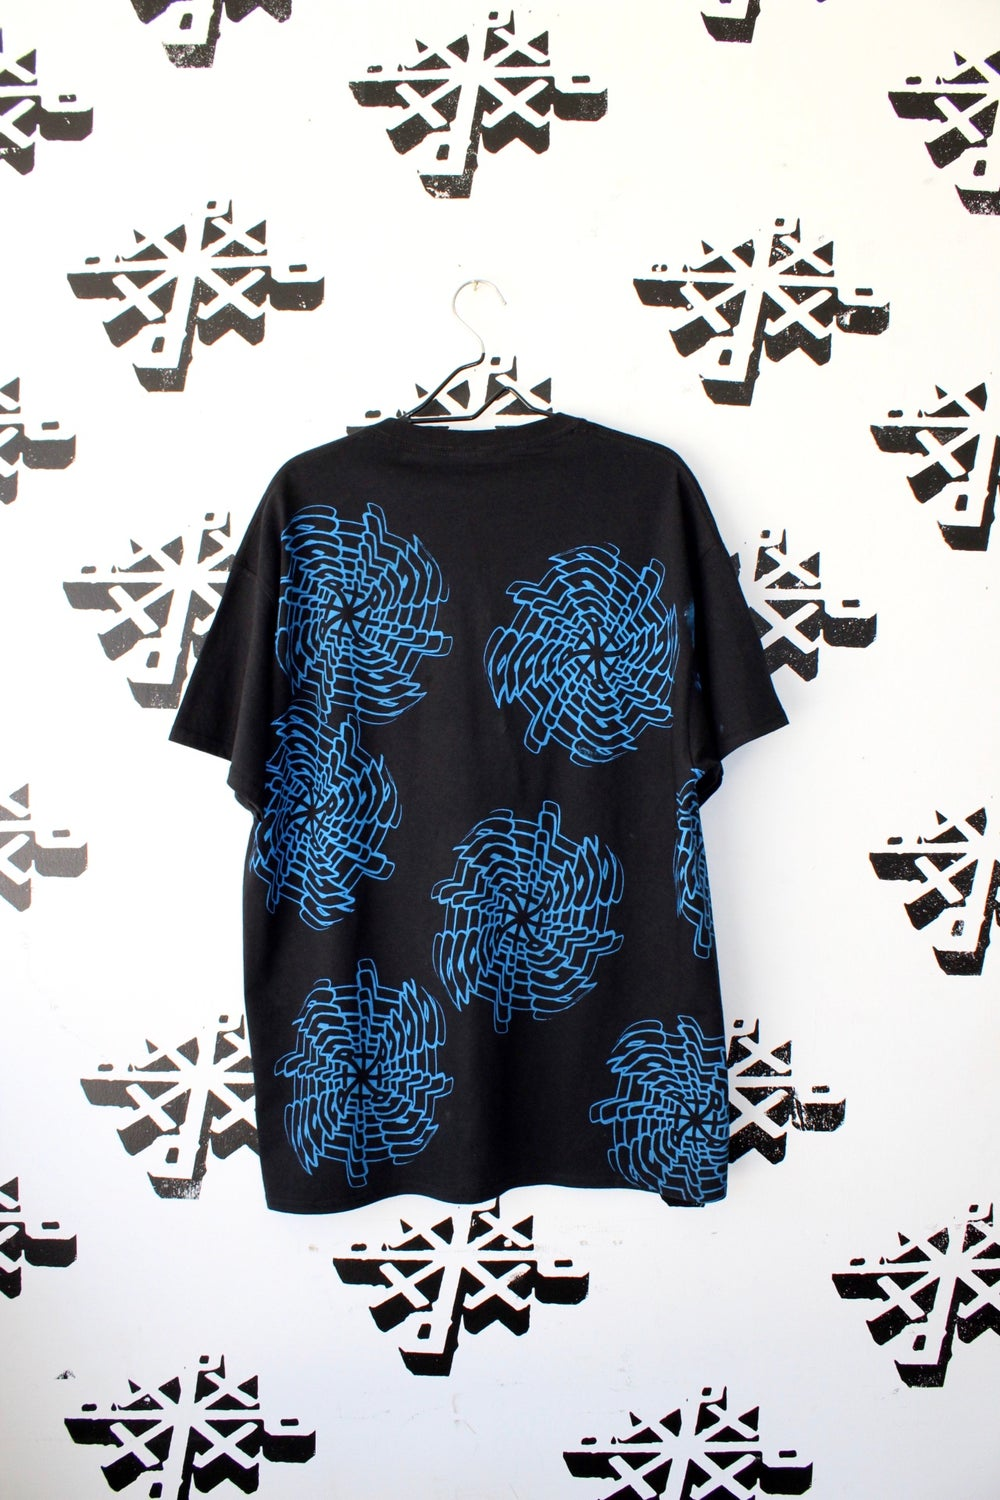 expand tee in black